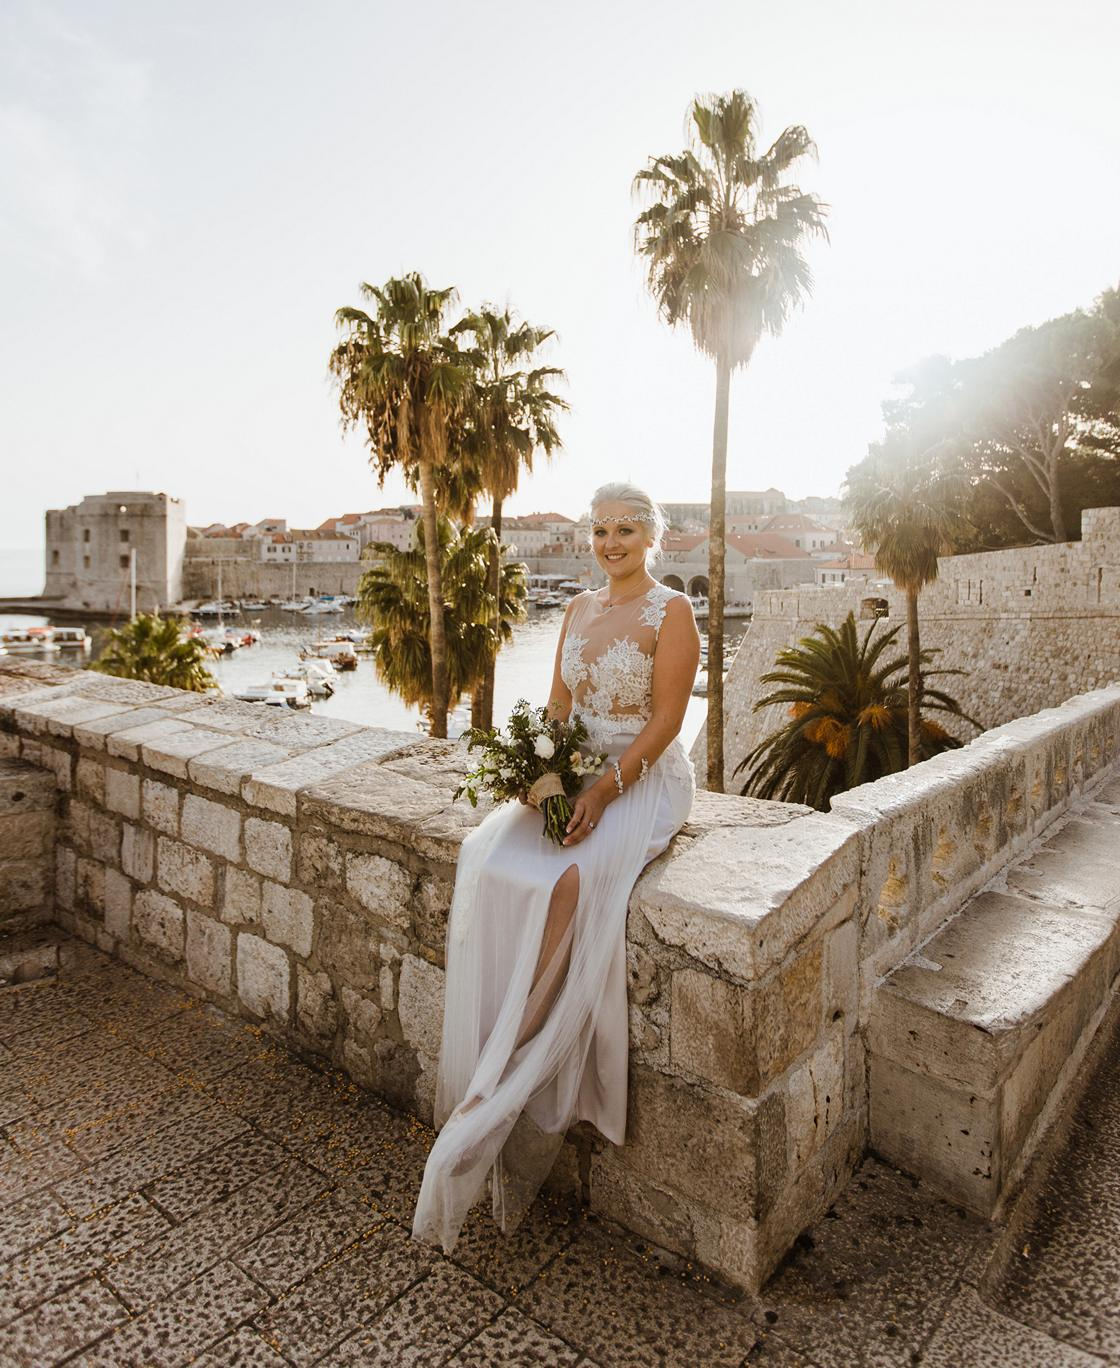 dubrovnik-wedding-photographer-croatia-destination-weddings-jenna-rich063